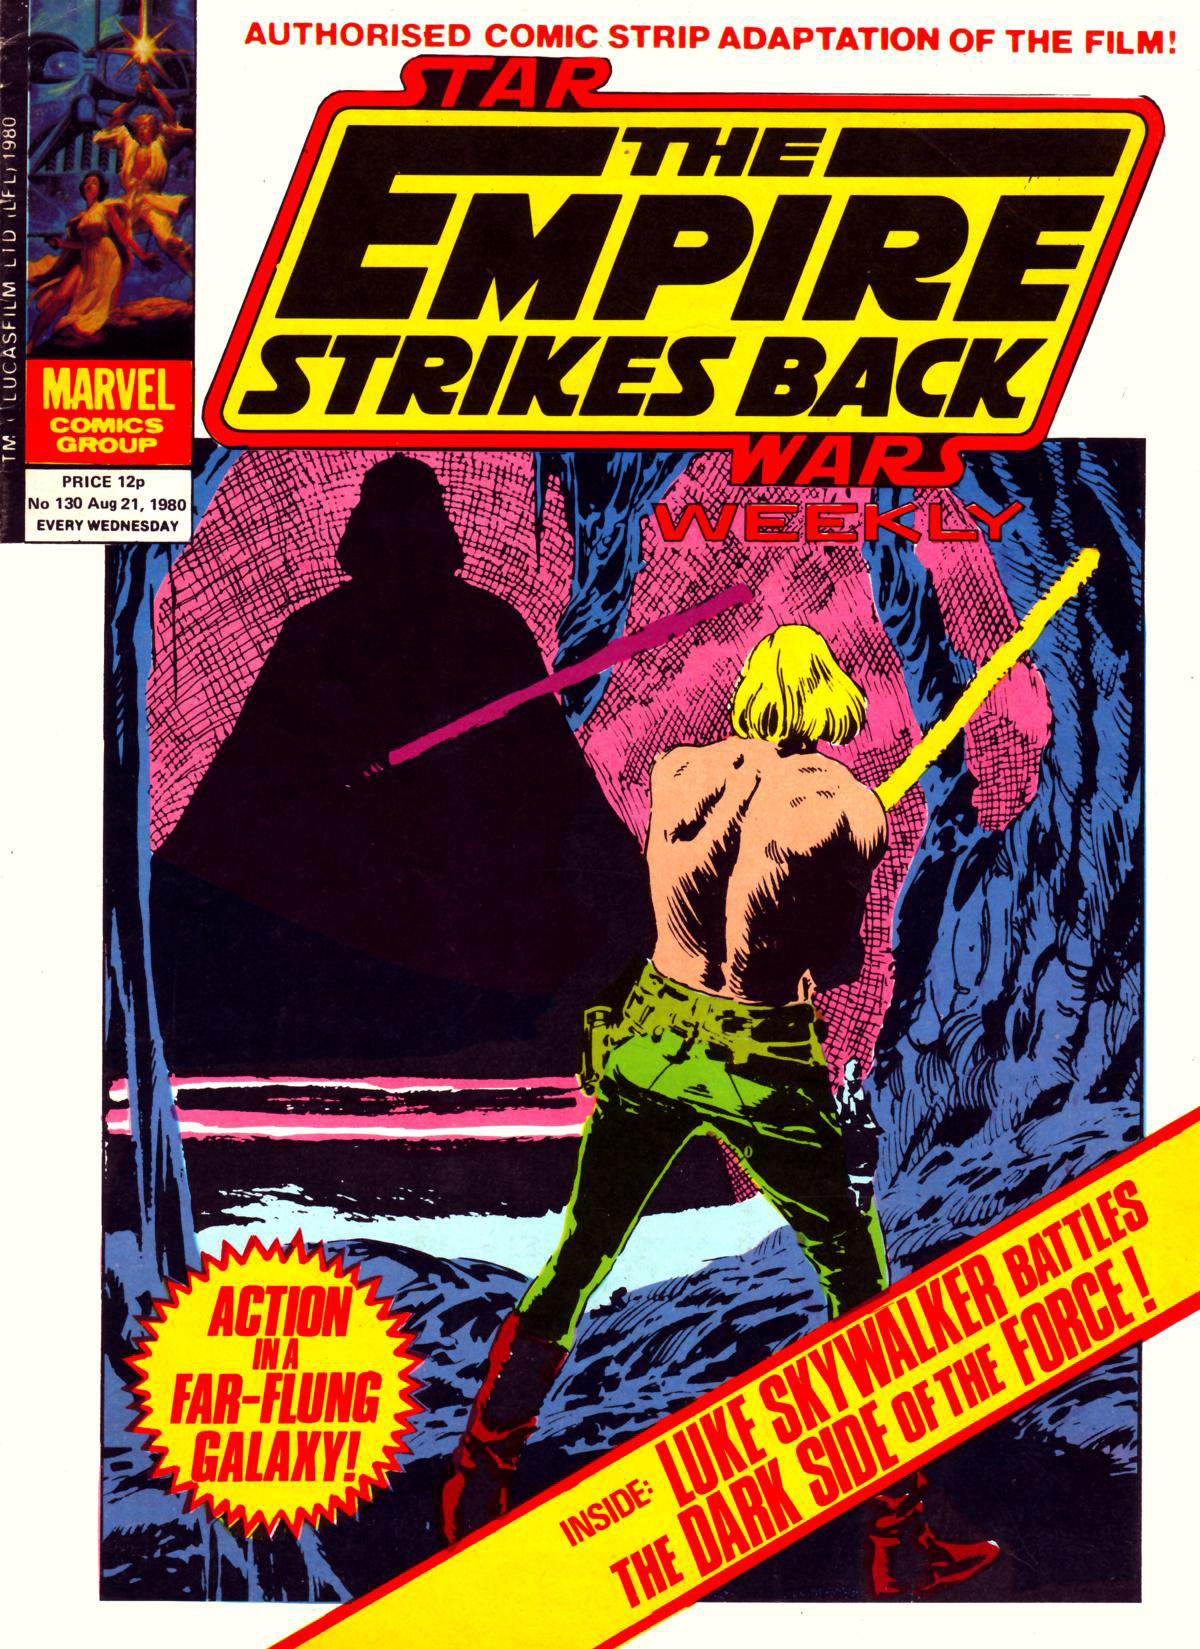 The Empire Strikes Back Weekly 130